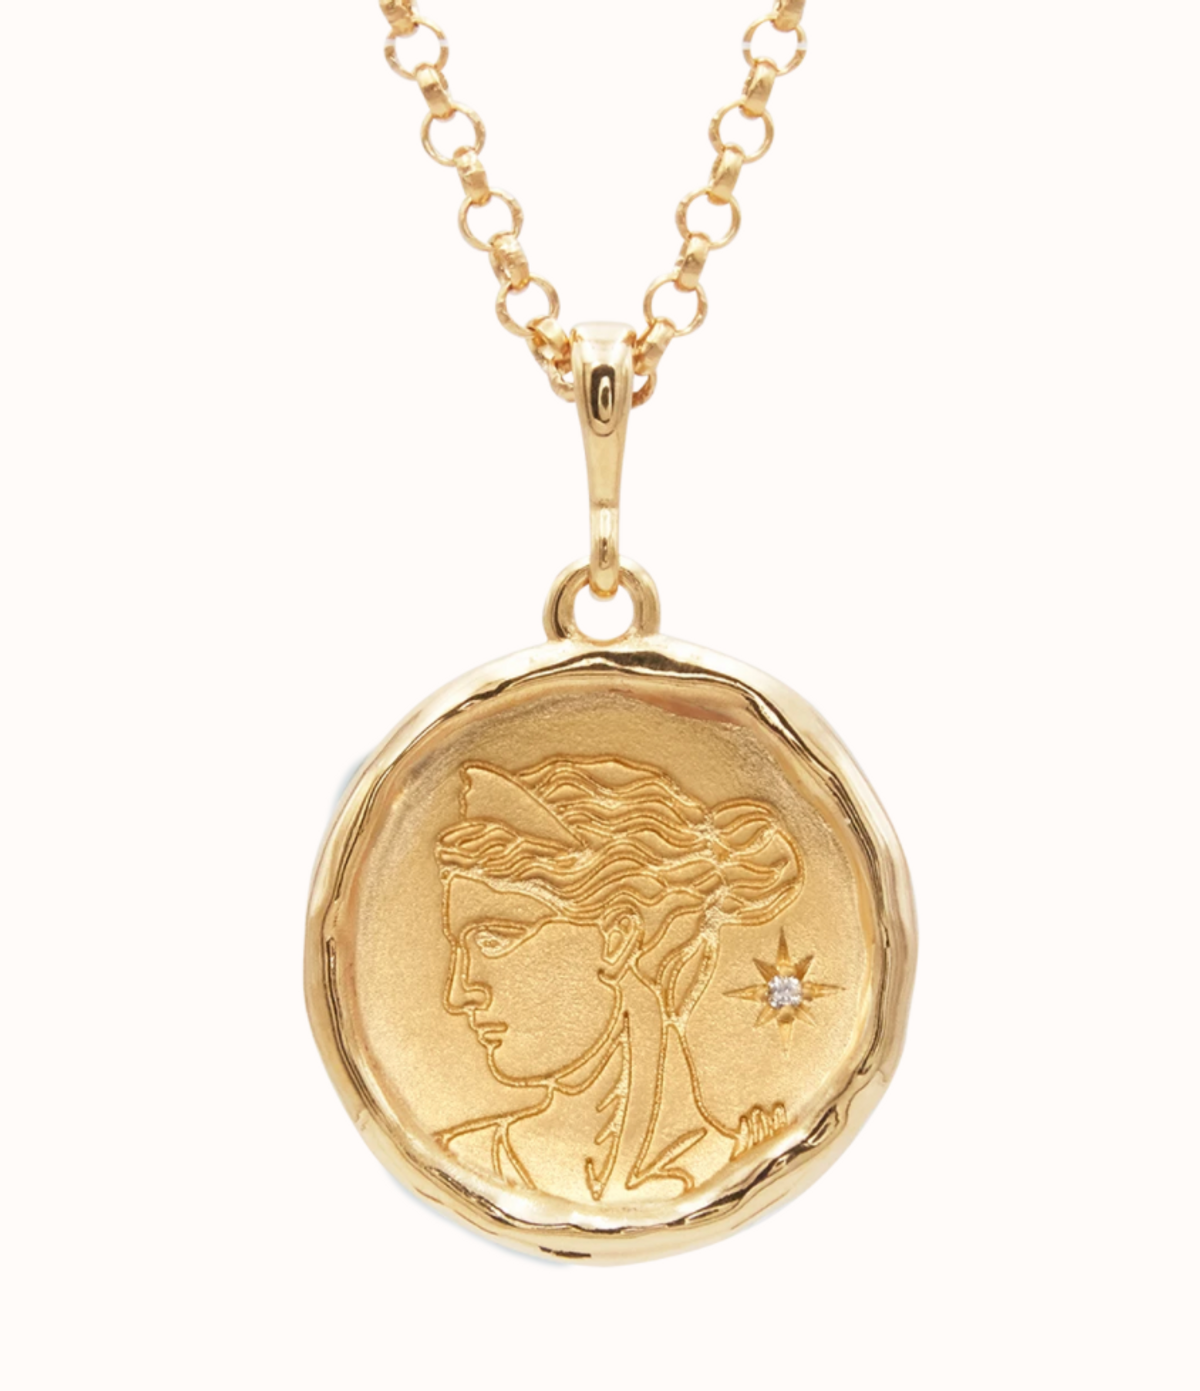 Artemis Goddess of Wild Things Necklace with Diamond